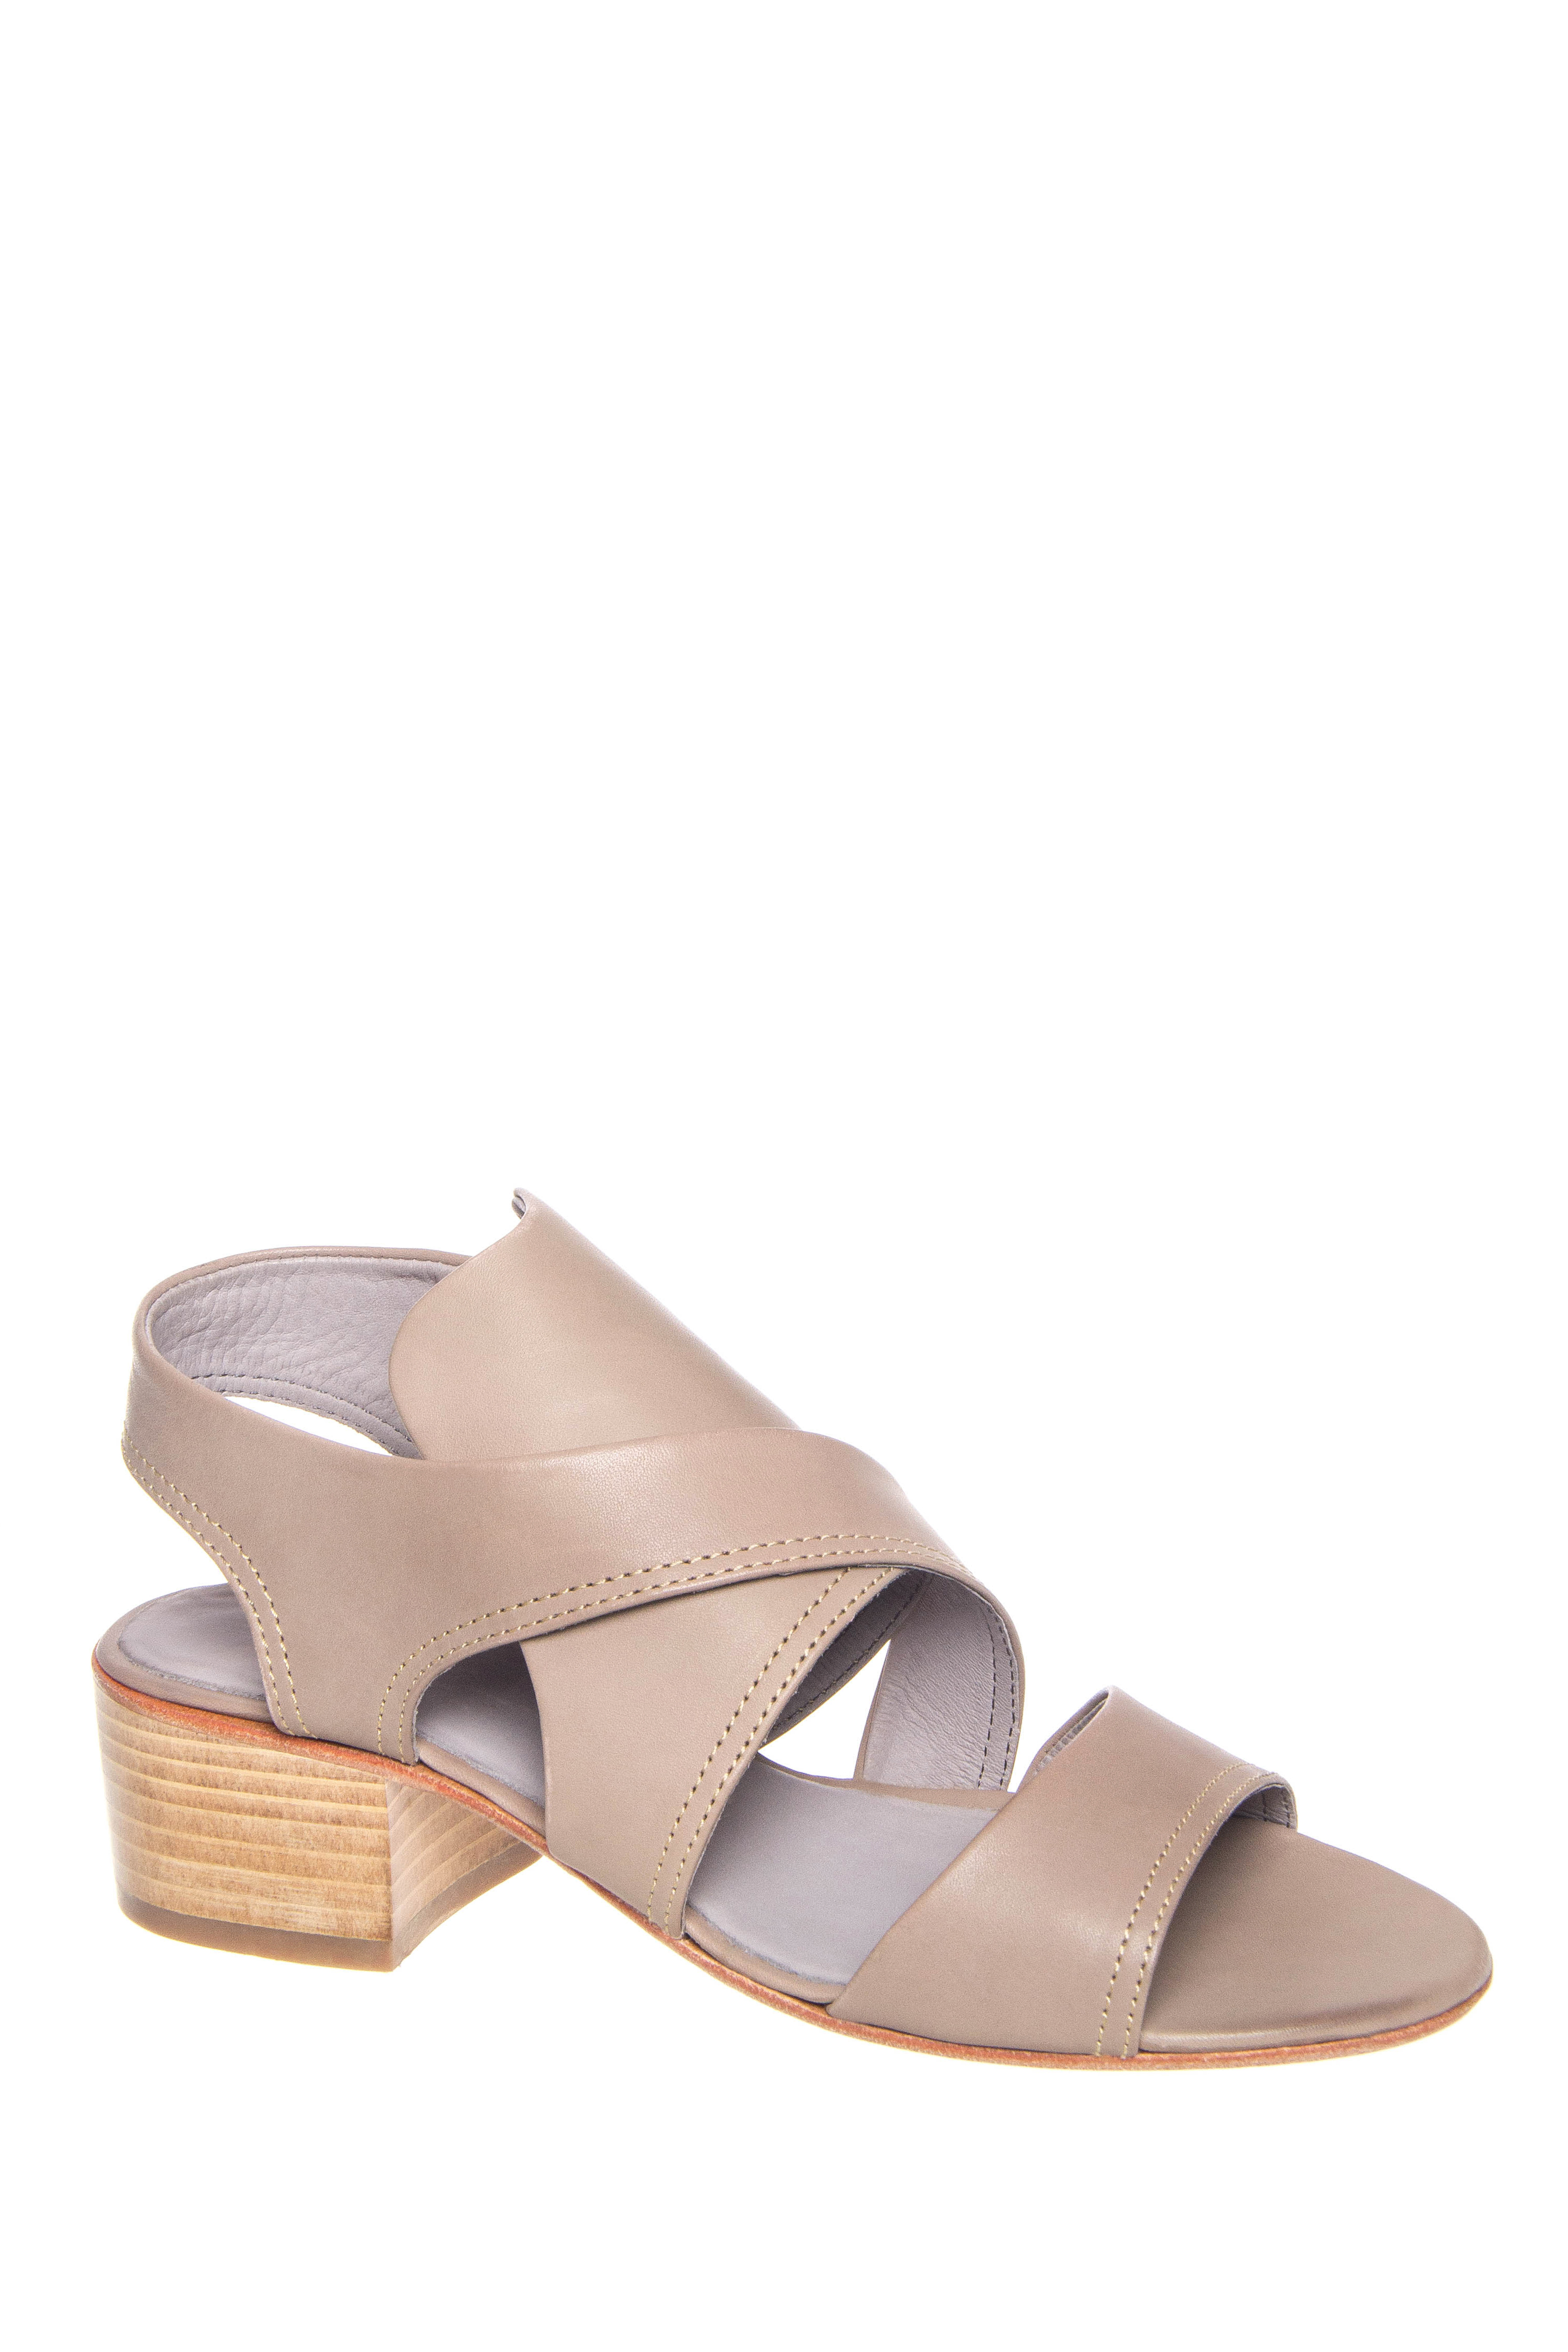 H By Hudson Ayasha Mid Heel Sandals - Taupe